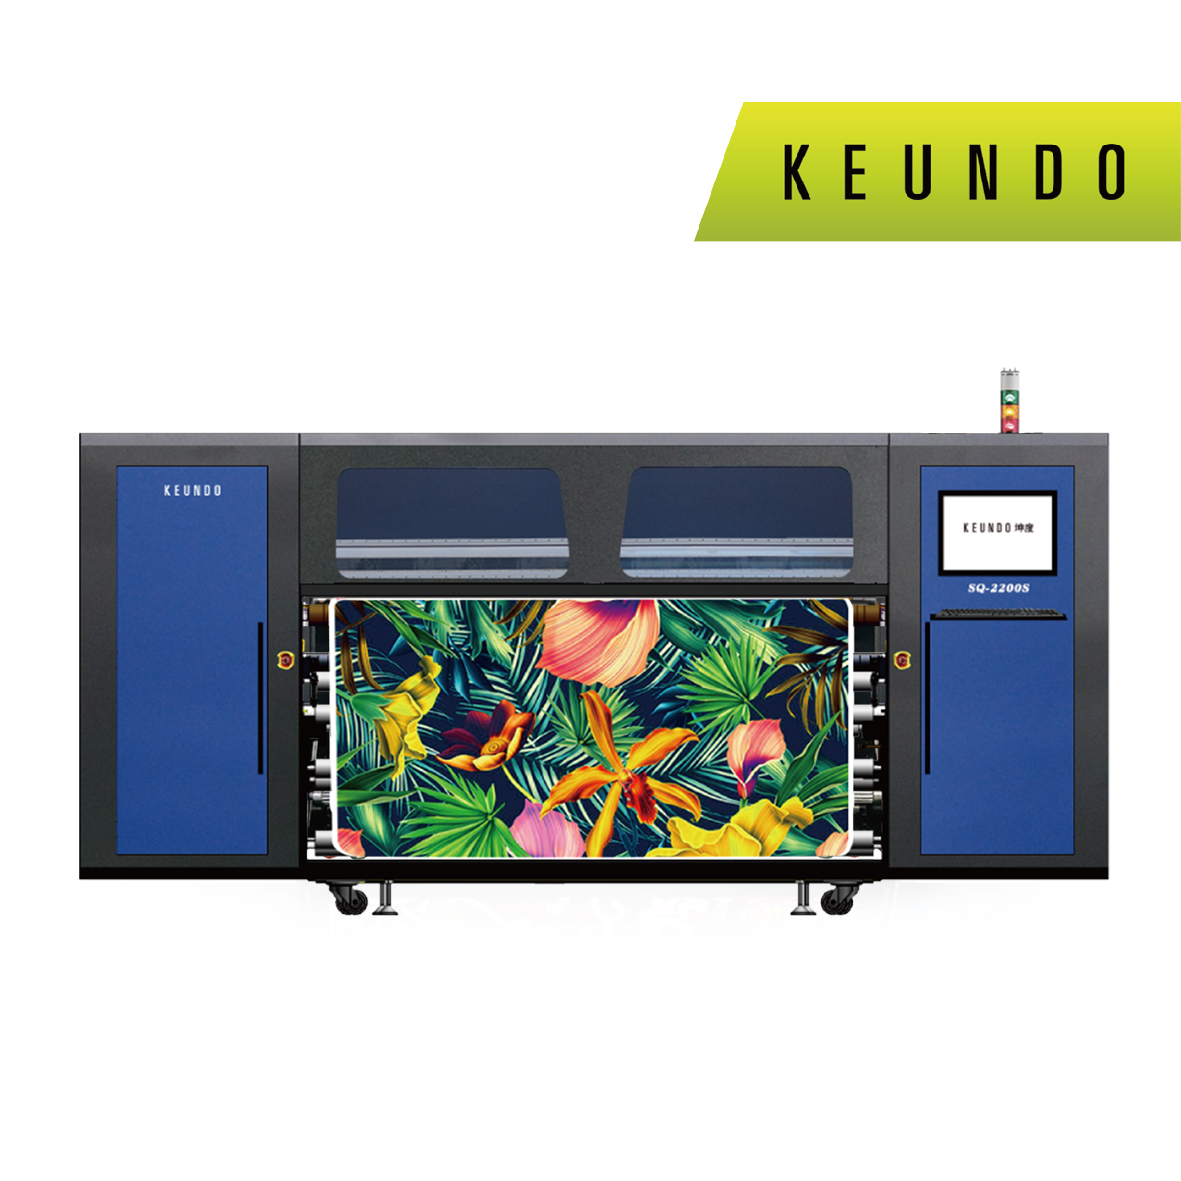 SQ-2204S Industrial Rubber Roll Dye Sublimation Printer with four S3200 heads